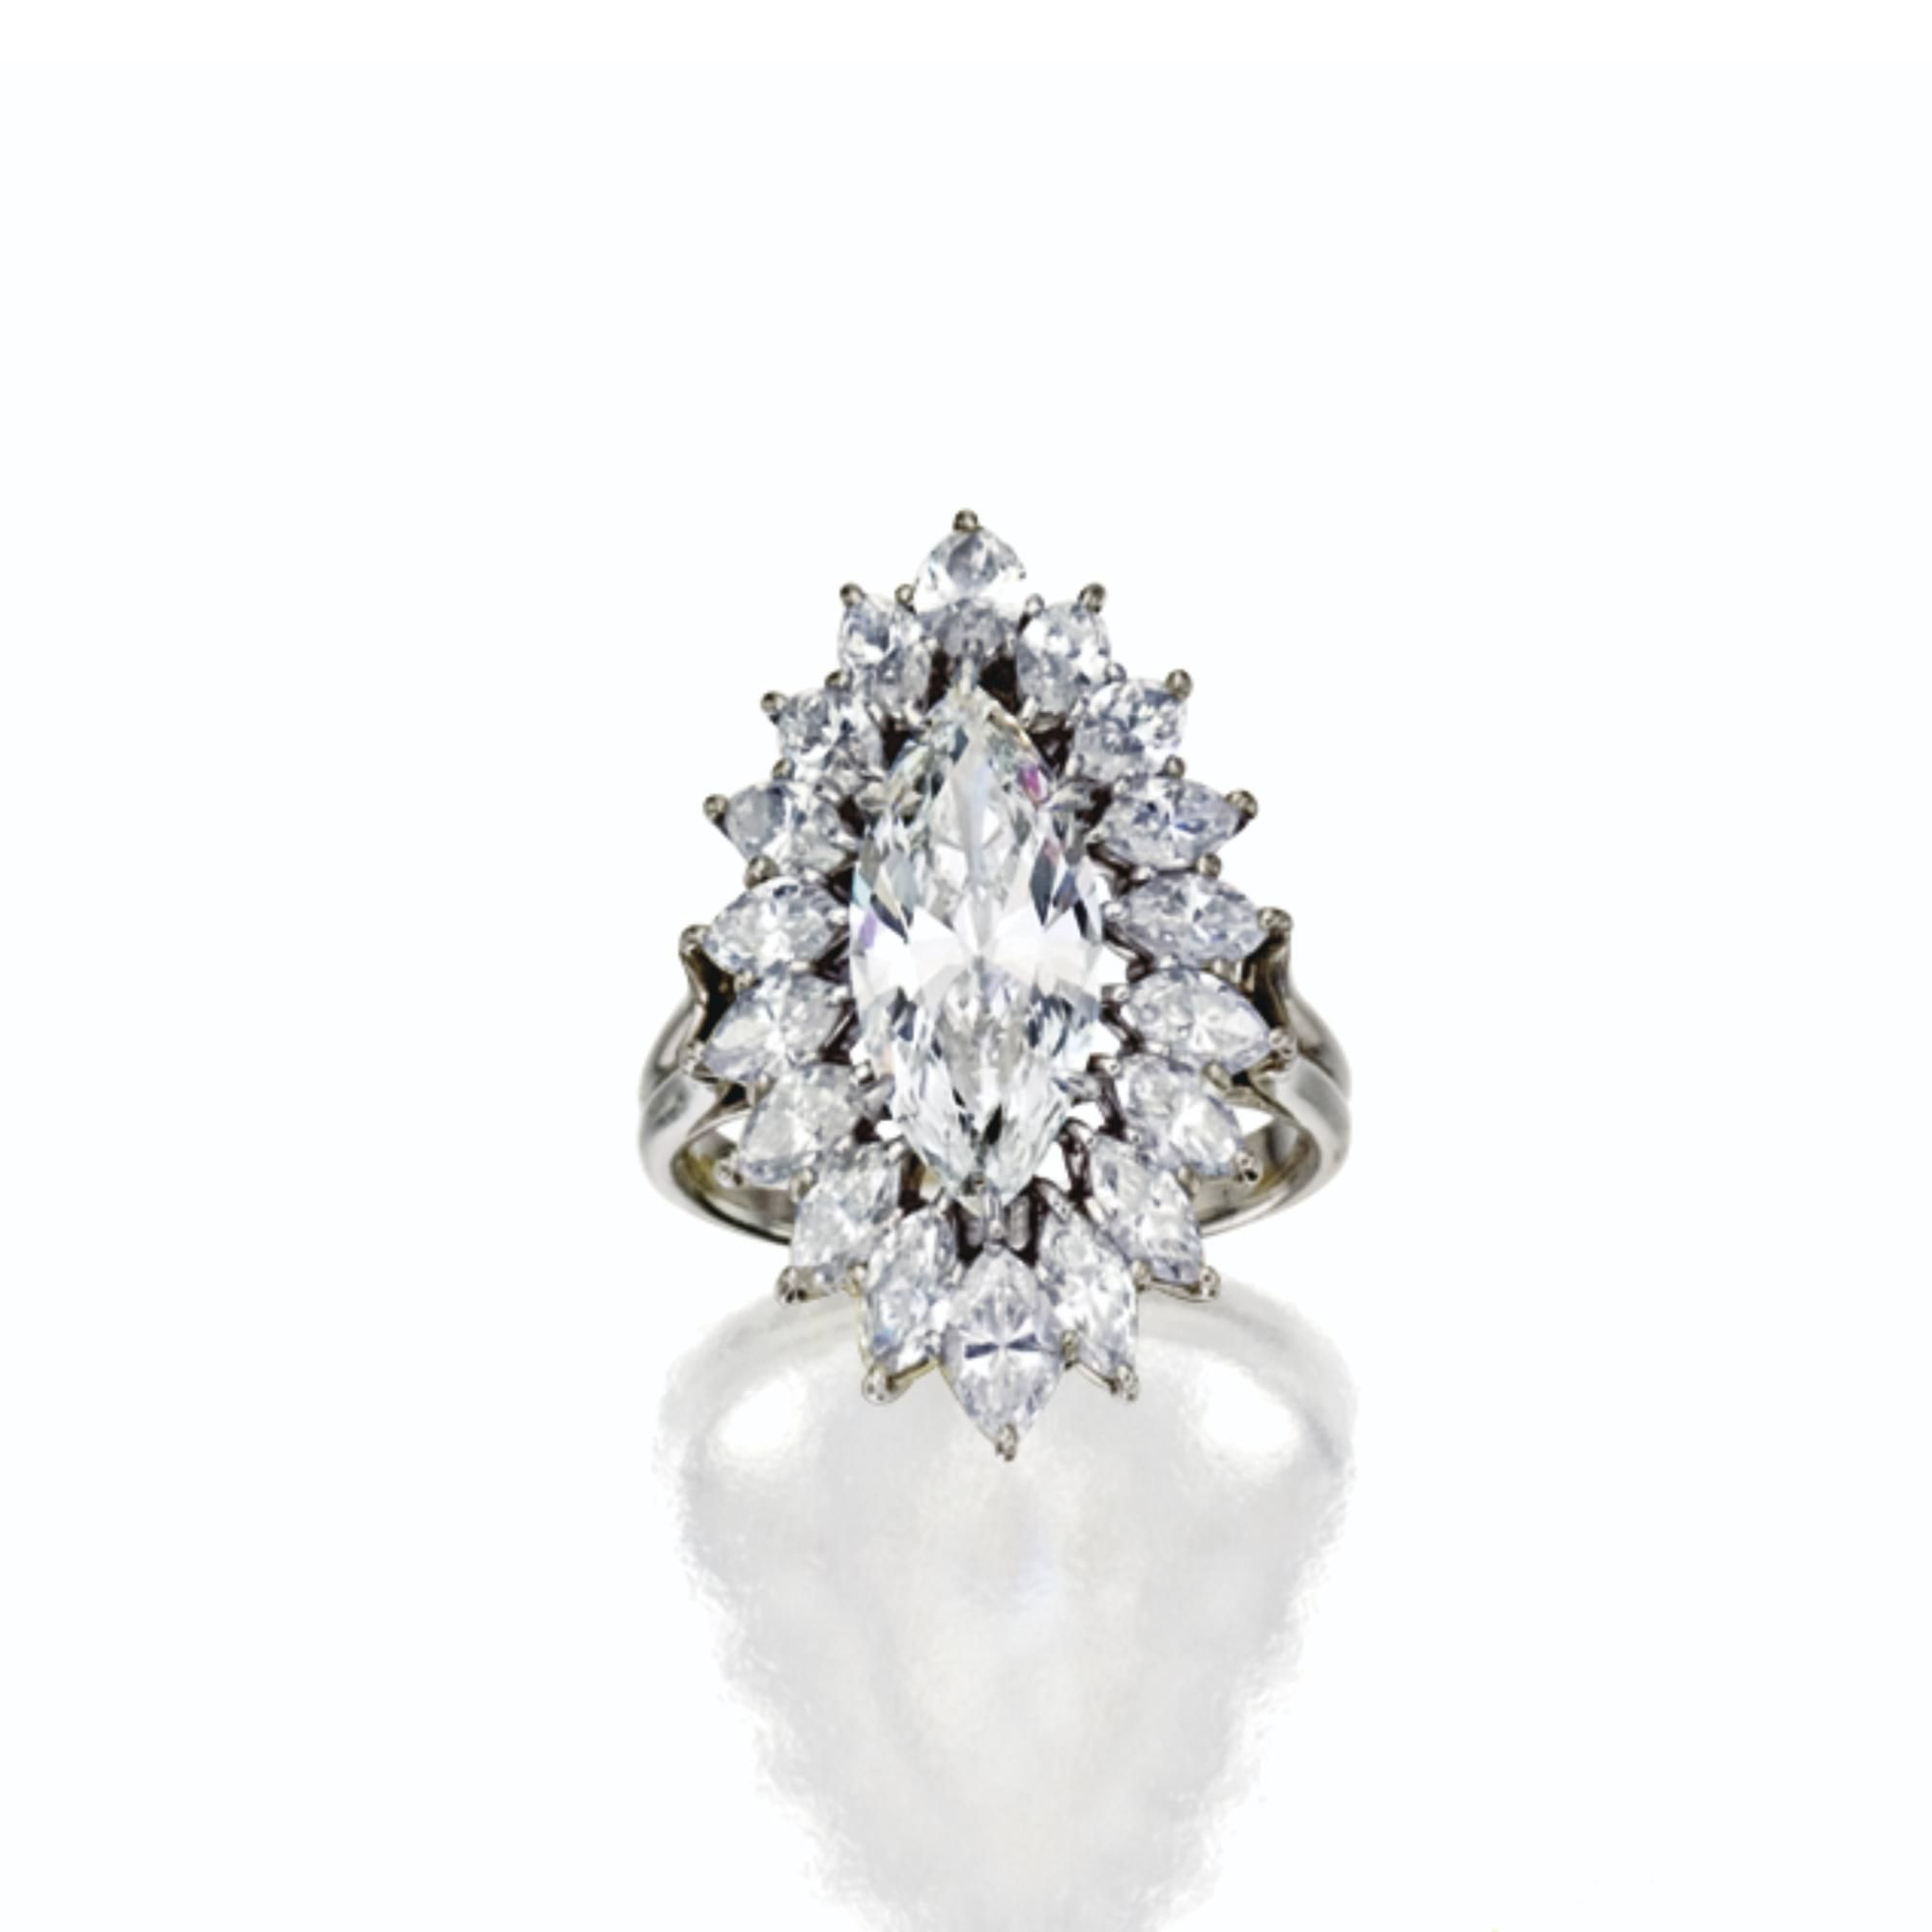 DIAMOND RING, HARRY WINSTON Centering a marquise-shaped diamond weighing 2.21 carats, framed by 18 marquise- shaped diamonds weighing approximately 2.55 carats, mounted in platinum, size 6. With Winston box.